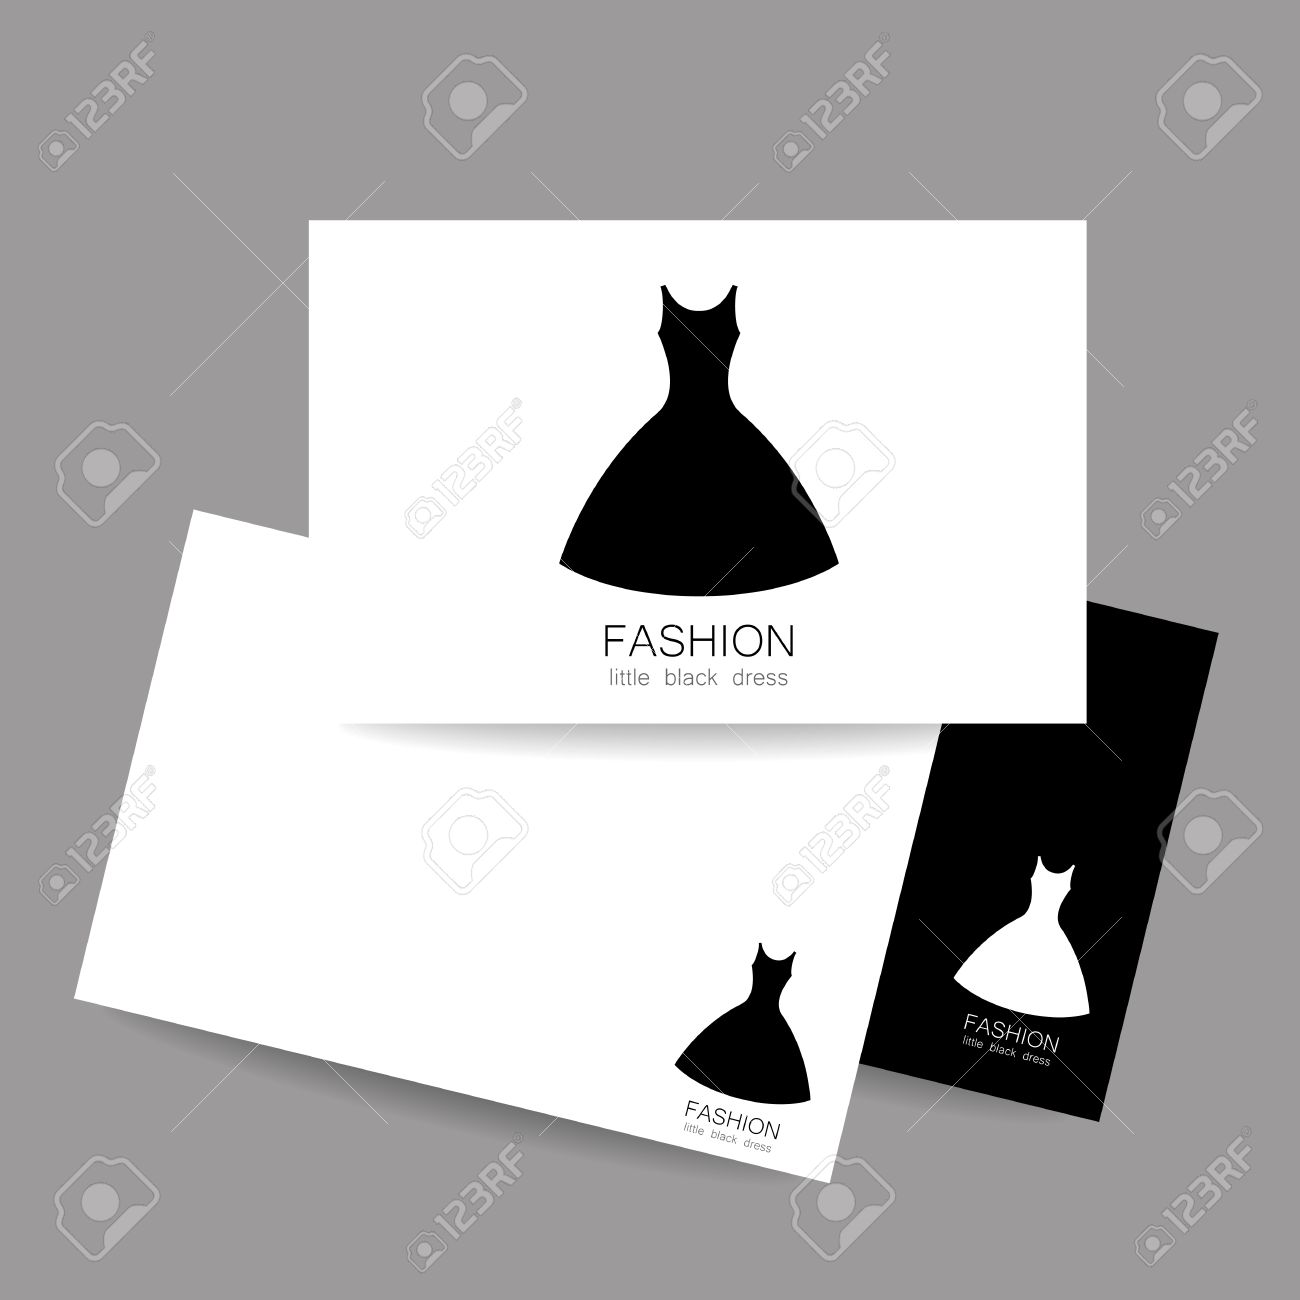 Concept Business Card Design For Fashion Shop Boutique Factory Royalty Free Cliparts Vectors And Stock Illustration Image 59652602